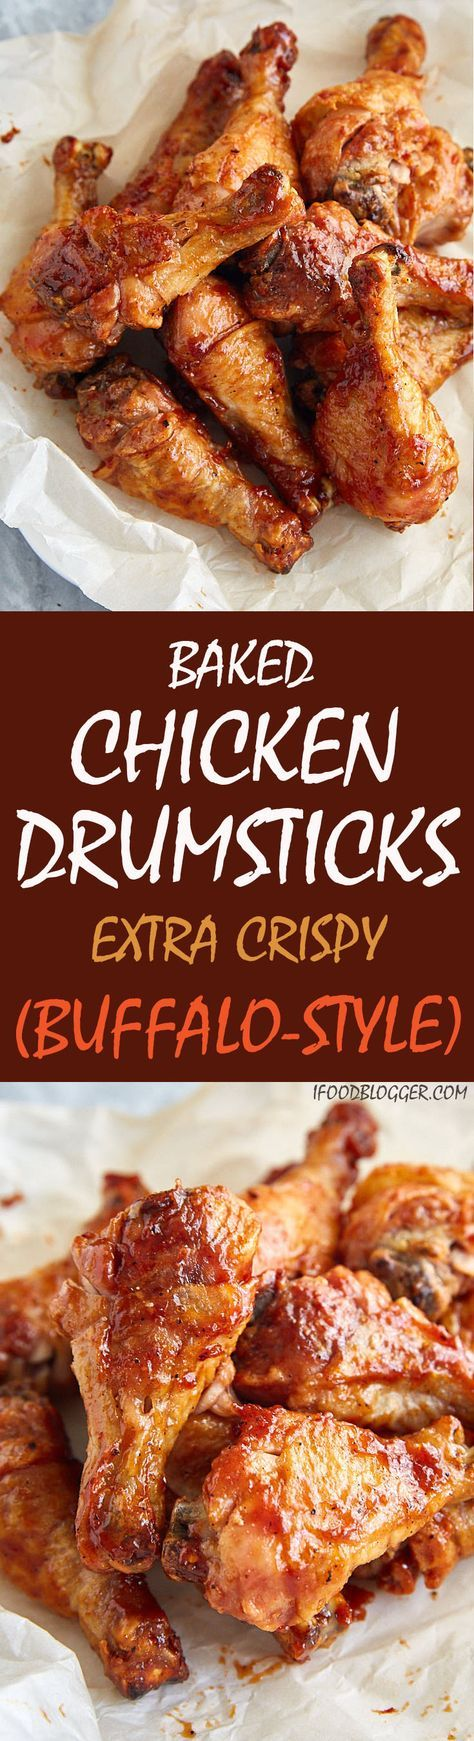 These Buffalostyle extra crispy baked chicken drumsticks